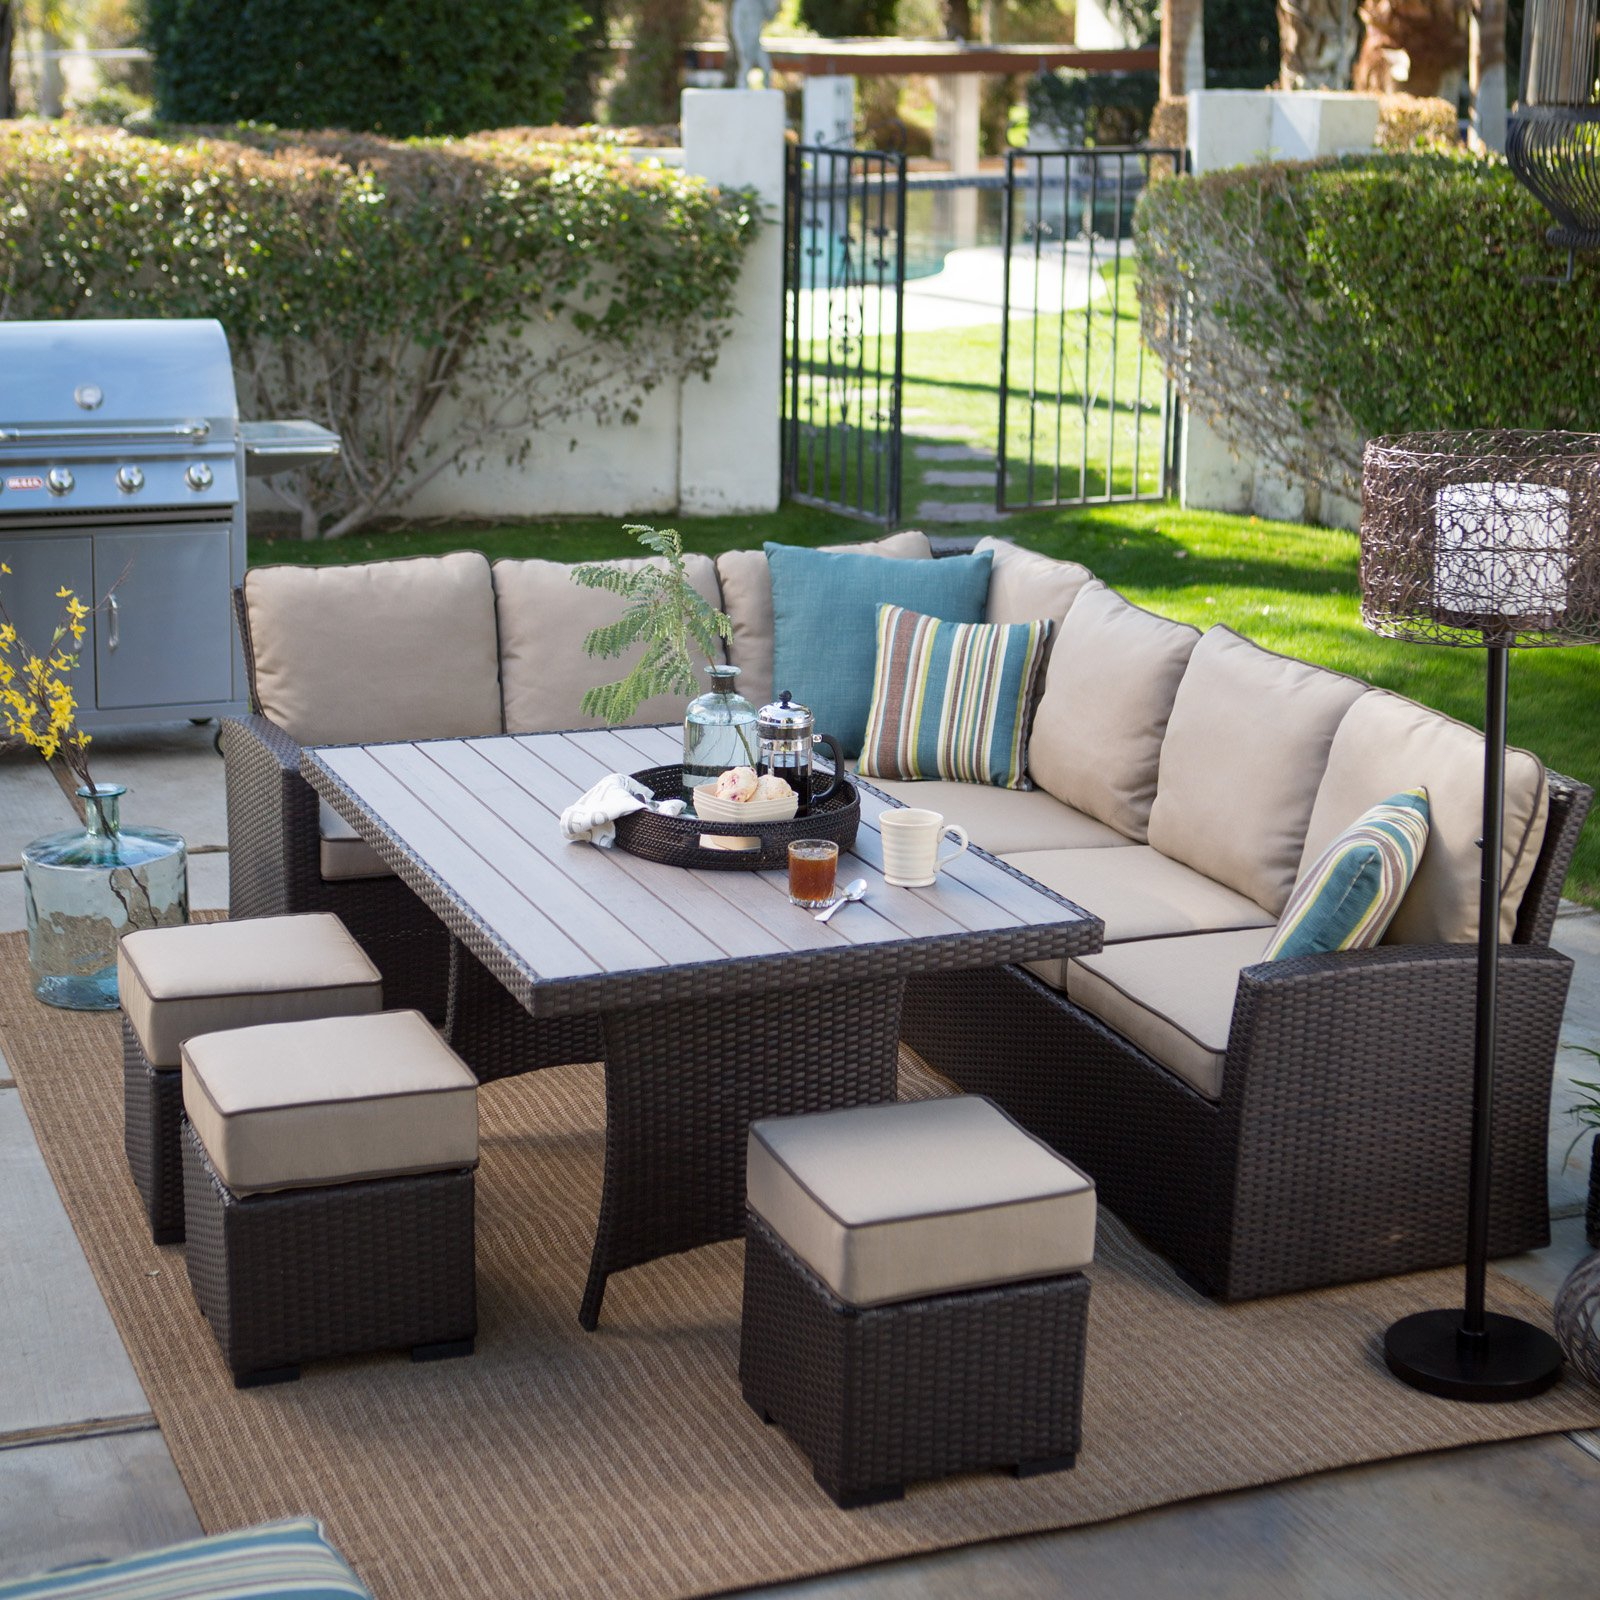 sonoma cushion outdoor wicker group sunbrella funriture patio resin furniture deep with seating wc products